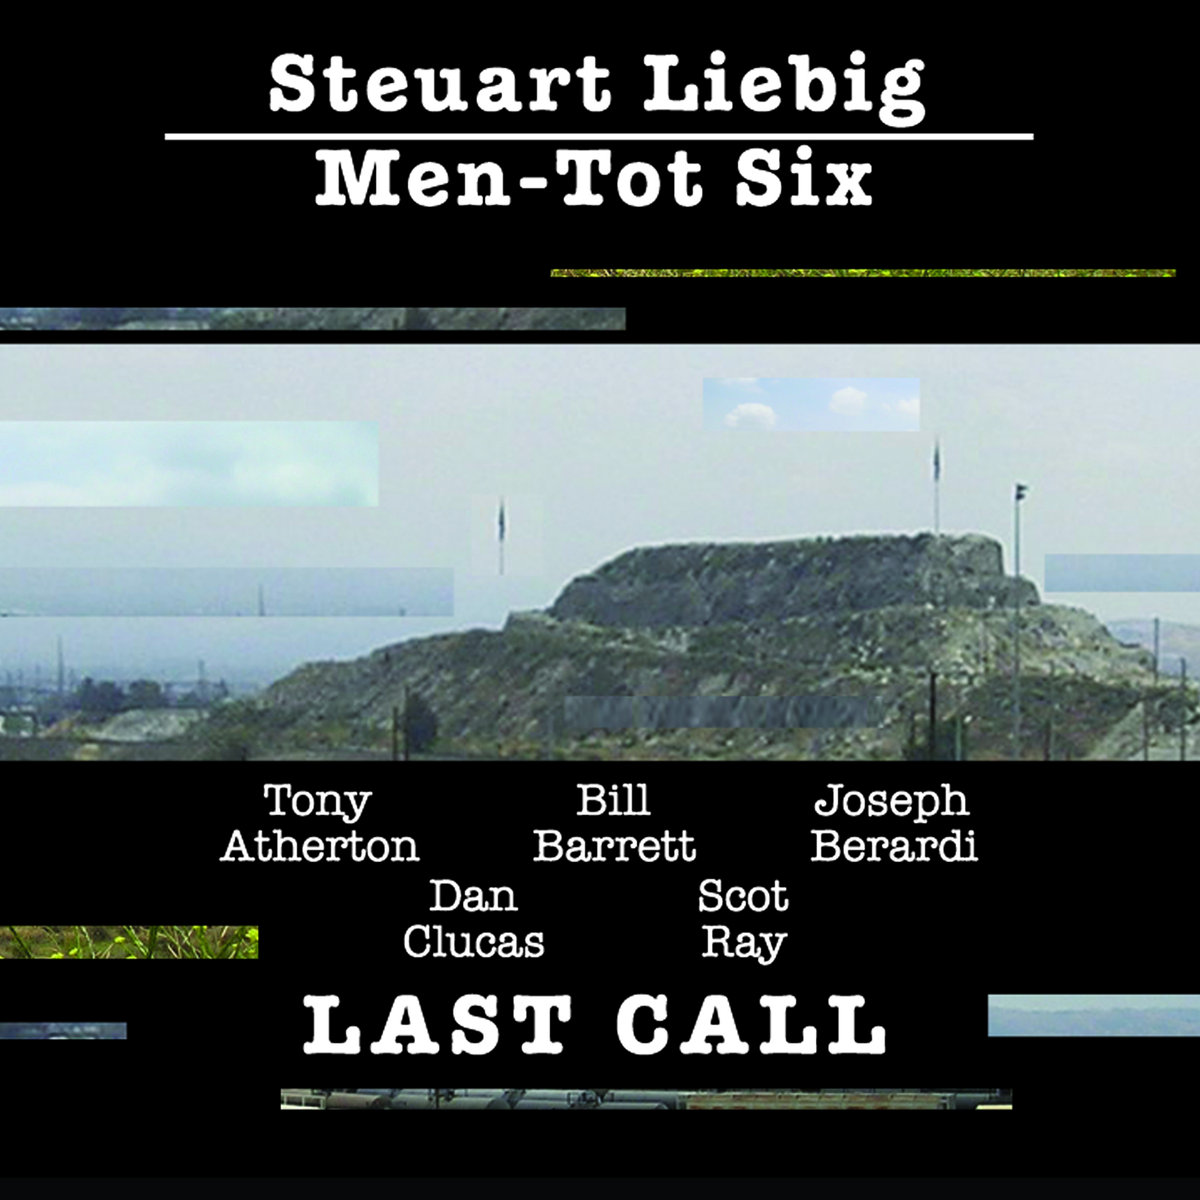 Steuart Liebig Men-Tot Six // Last Call